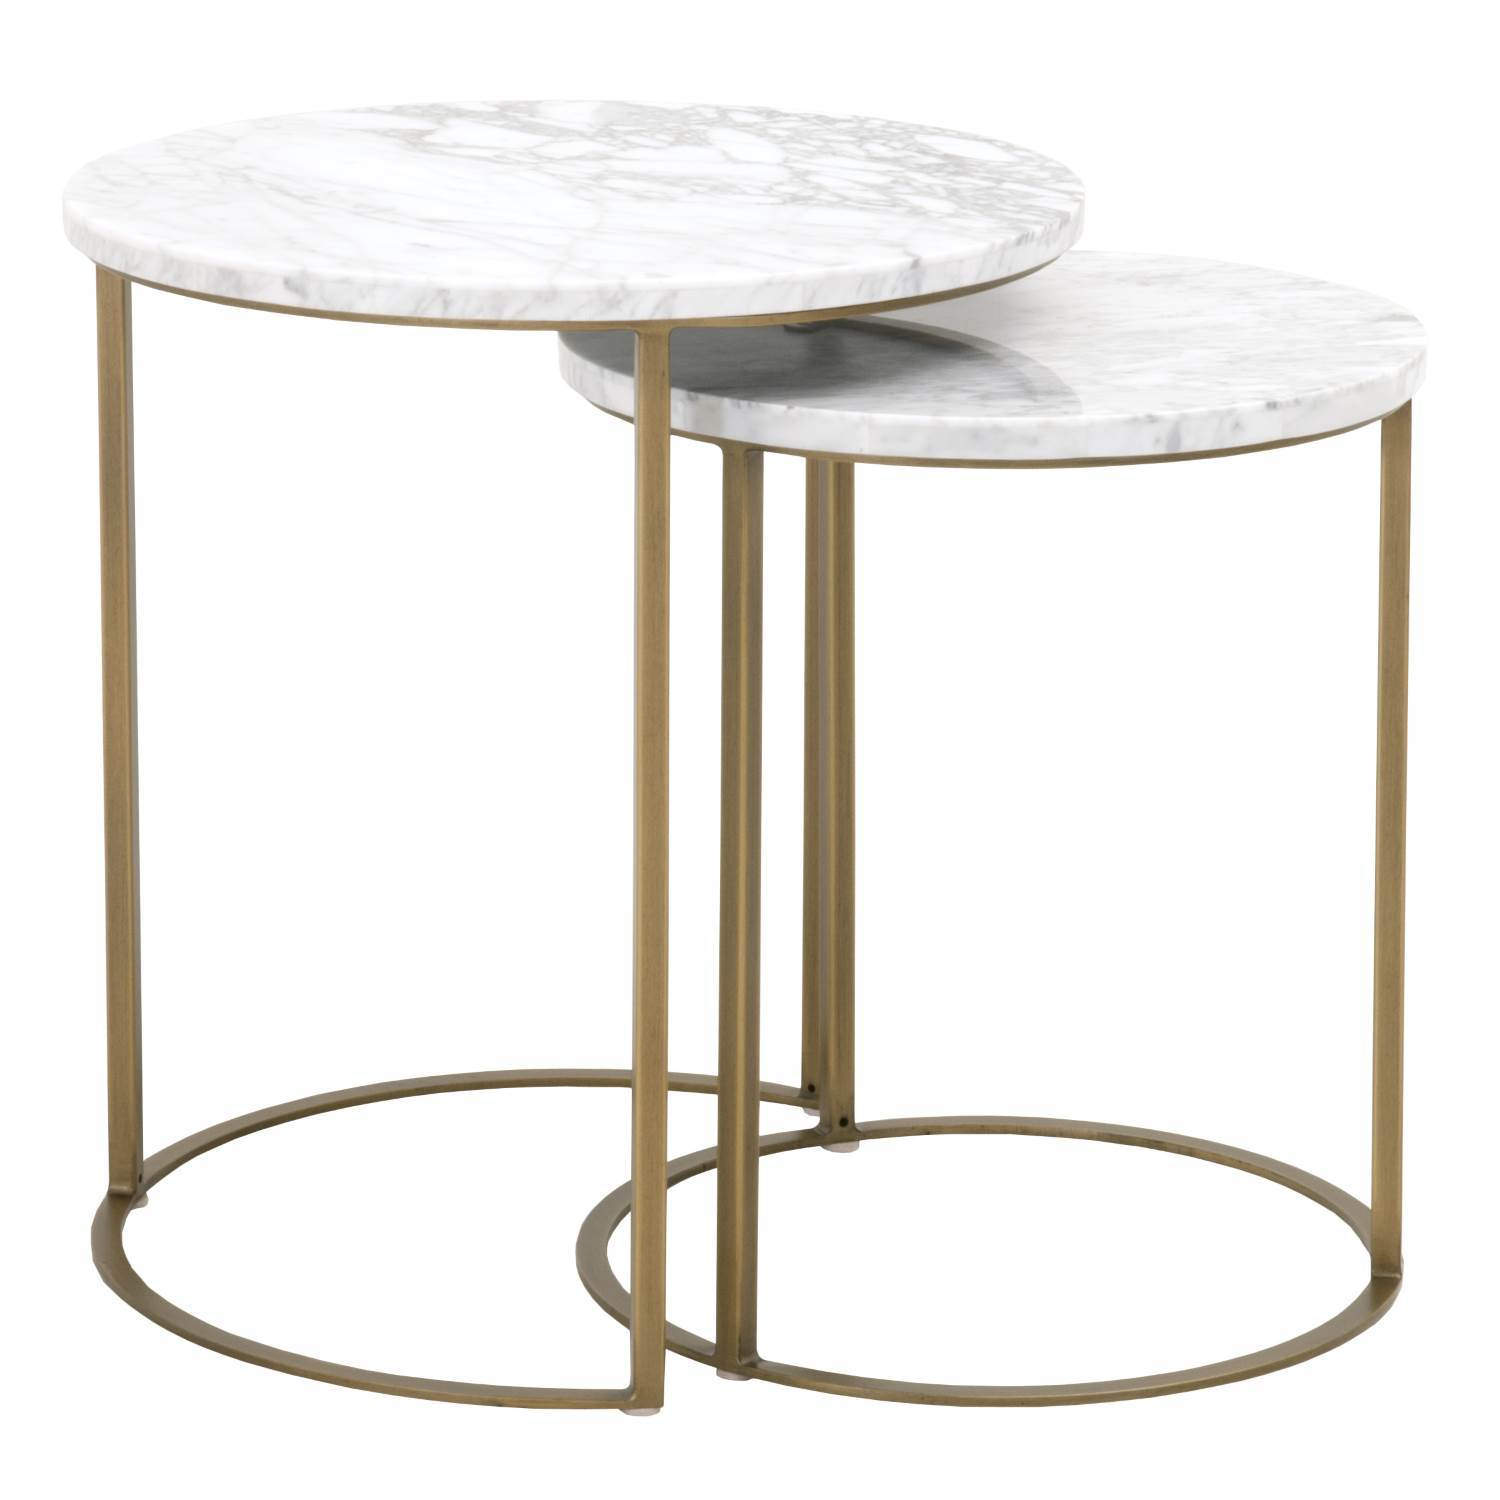 Carrera Round Nesting Accent Table in White Carrera Marble,  Brushed Gold